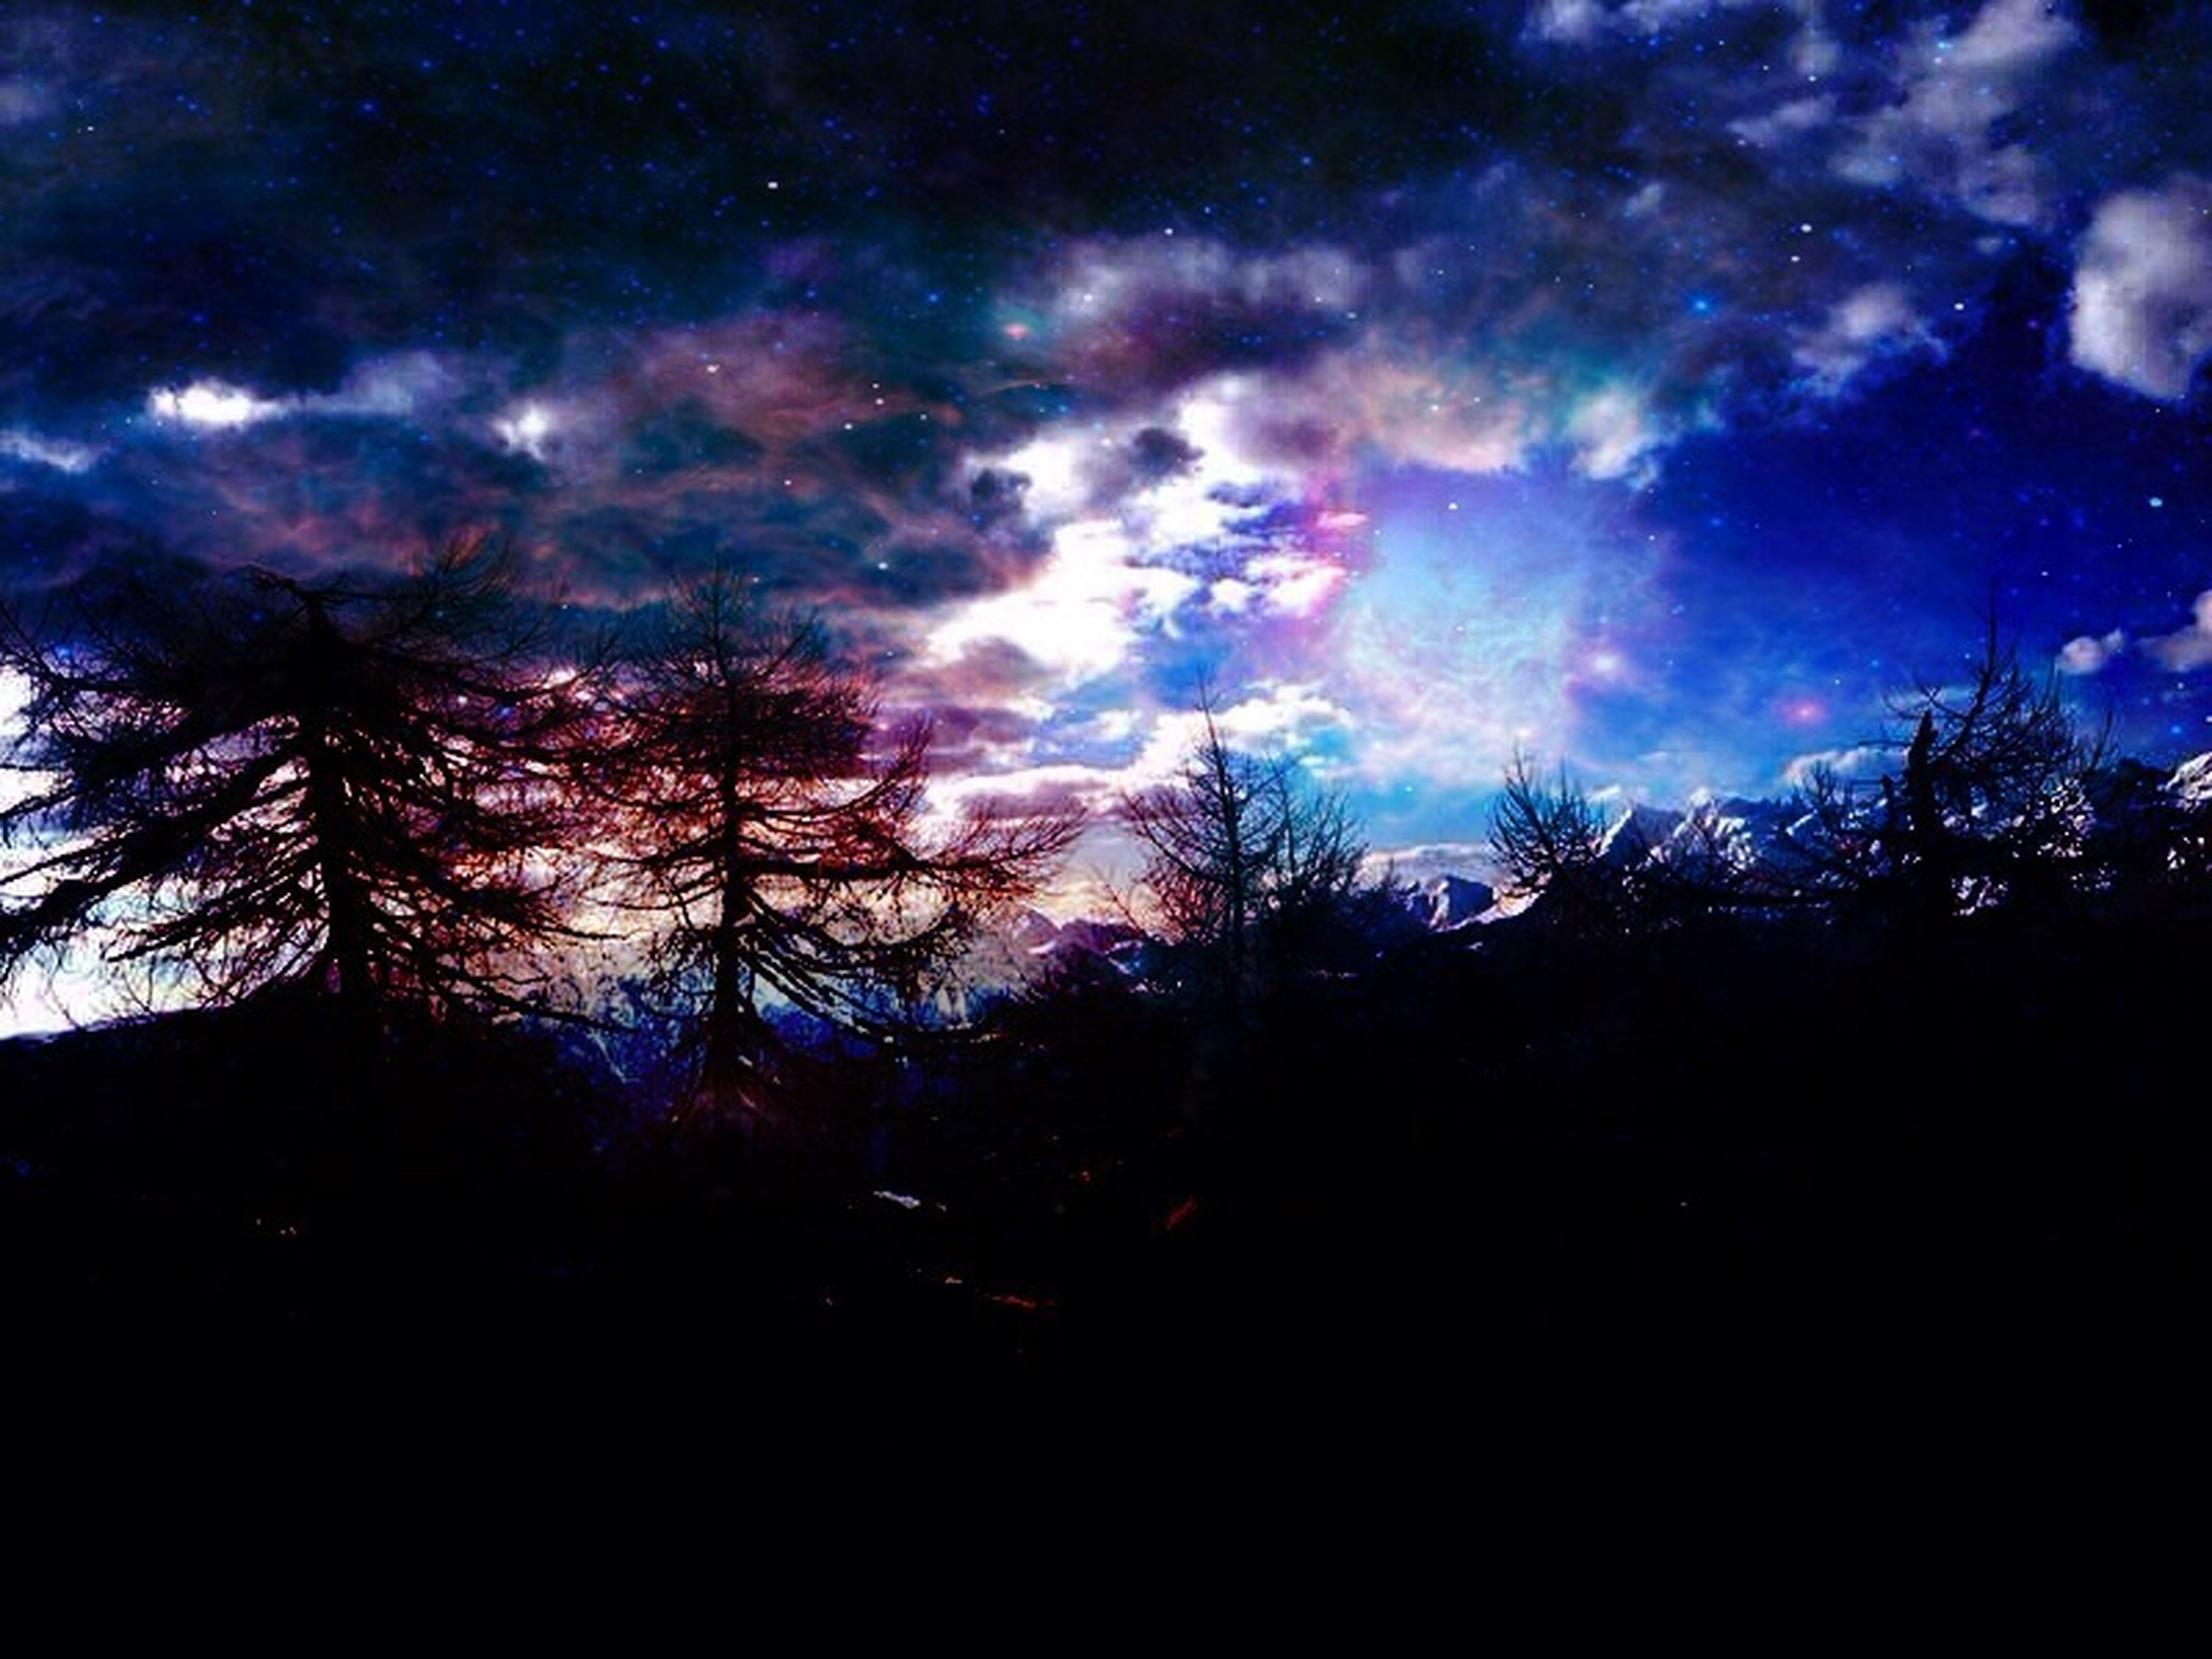 tree, silhouette, sky, tranquility, scenics, night, beauty in nature, tranquil scene, low angle view, nature, cloud - sky, dusk, idyllic, dark, dramatic sky, outdoors, blue, cloudy, no people, majestic